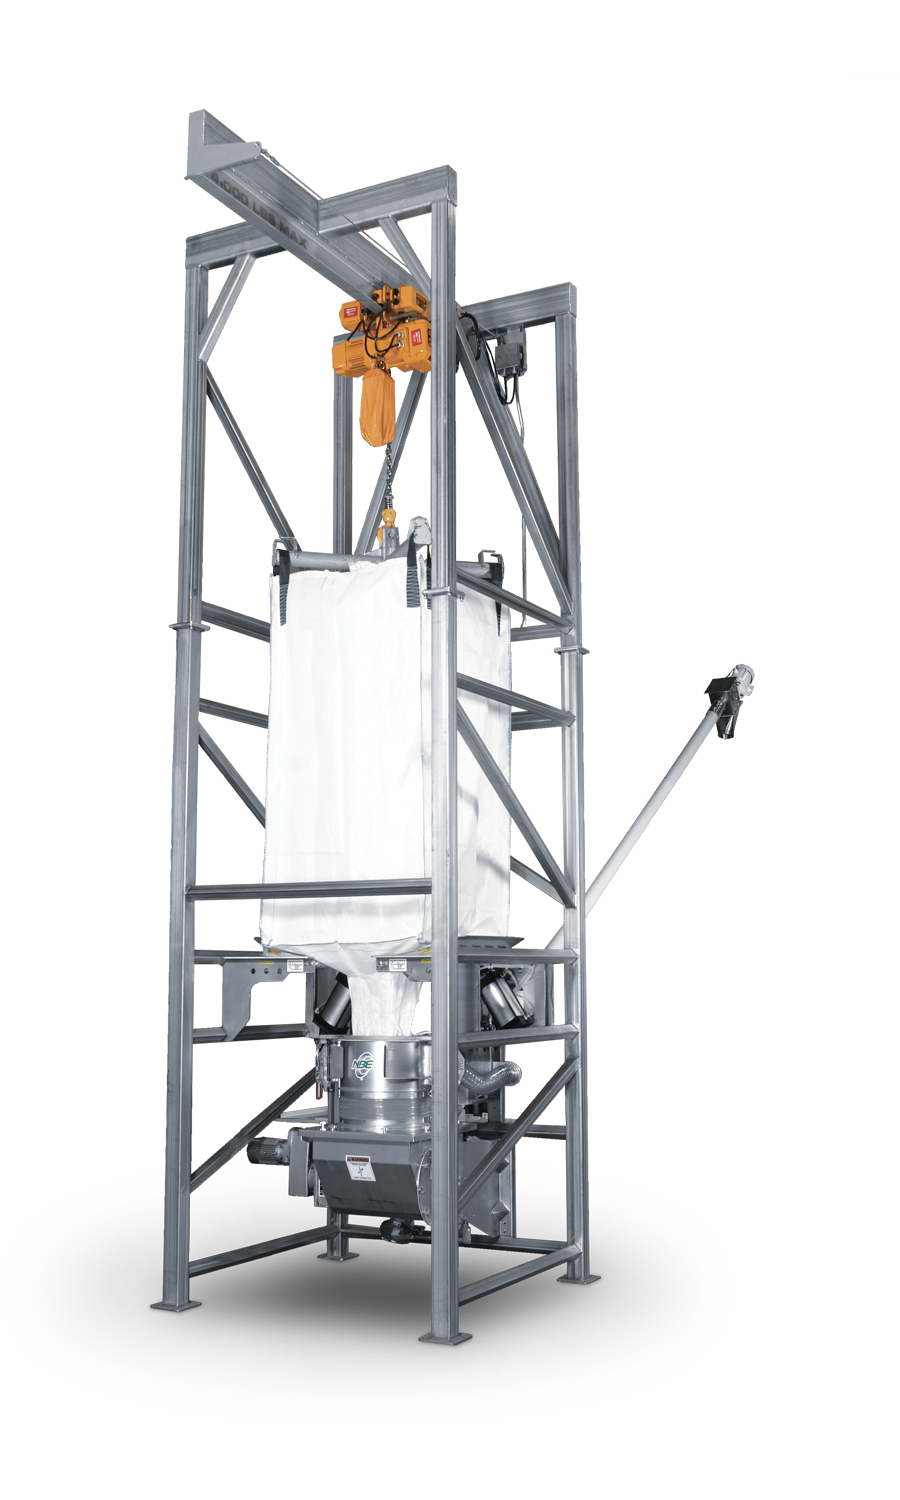 Bulk Bag Unloader System From National Bulk Equipment